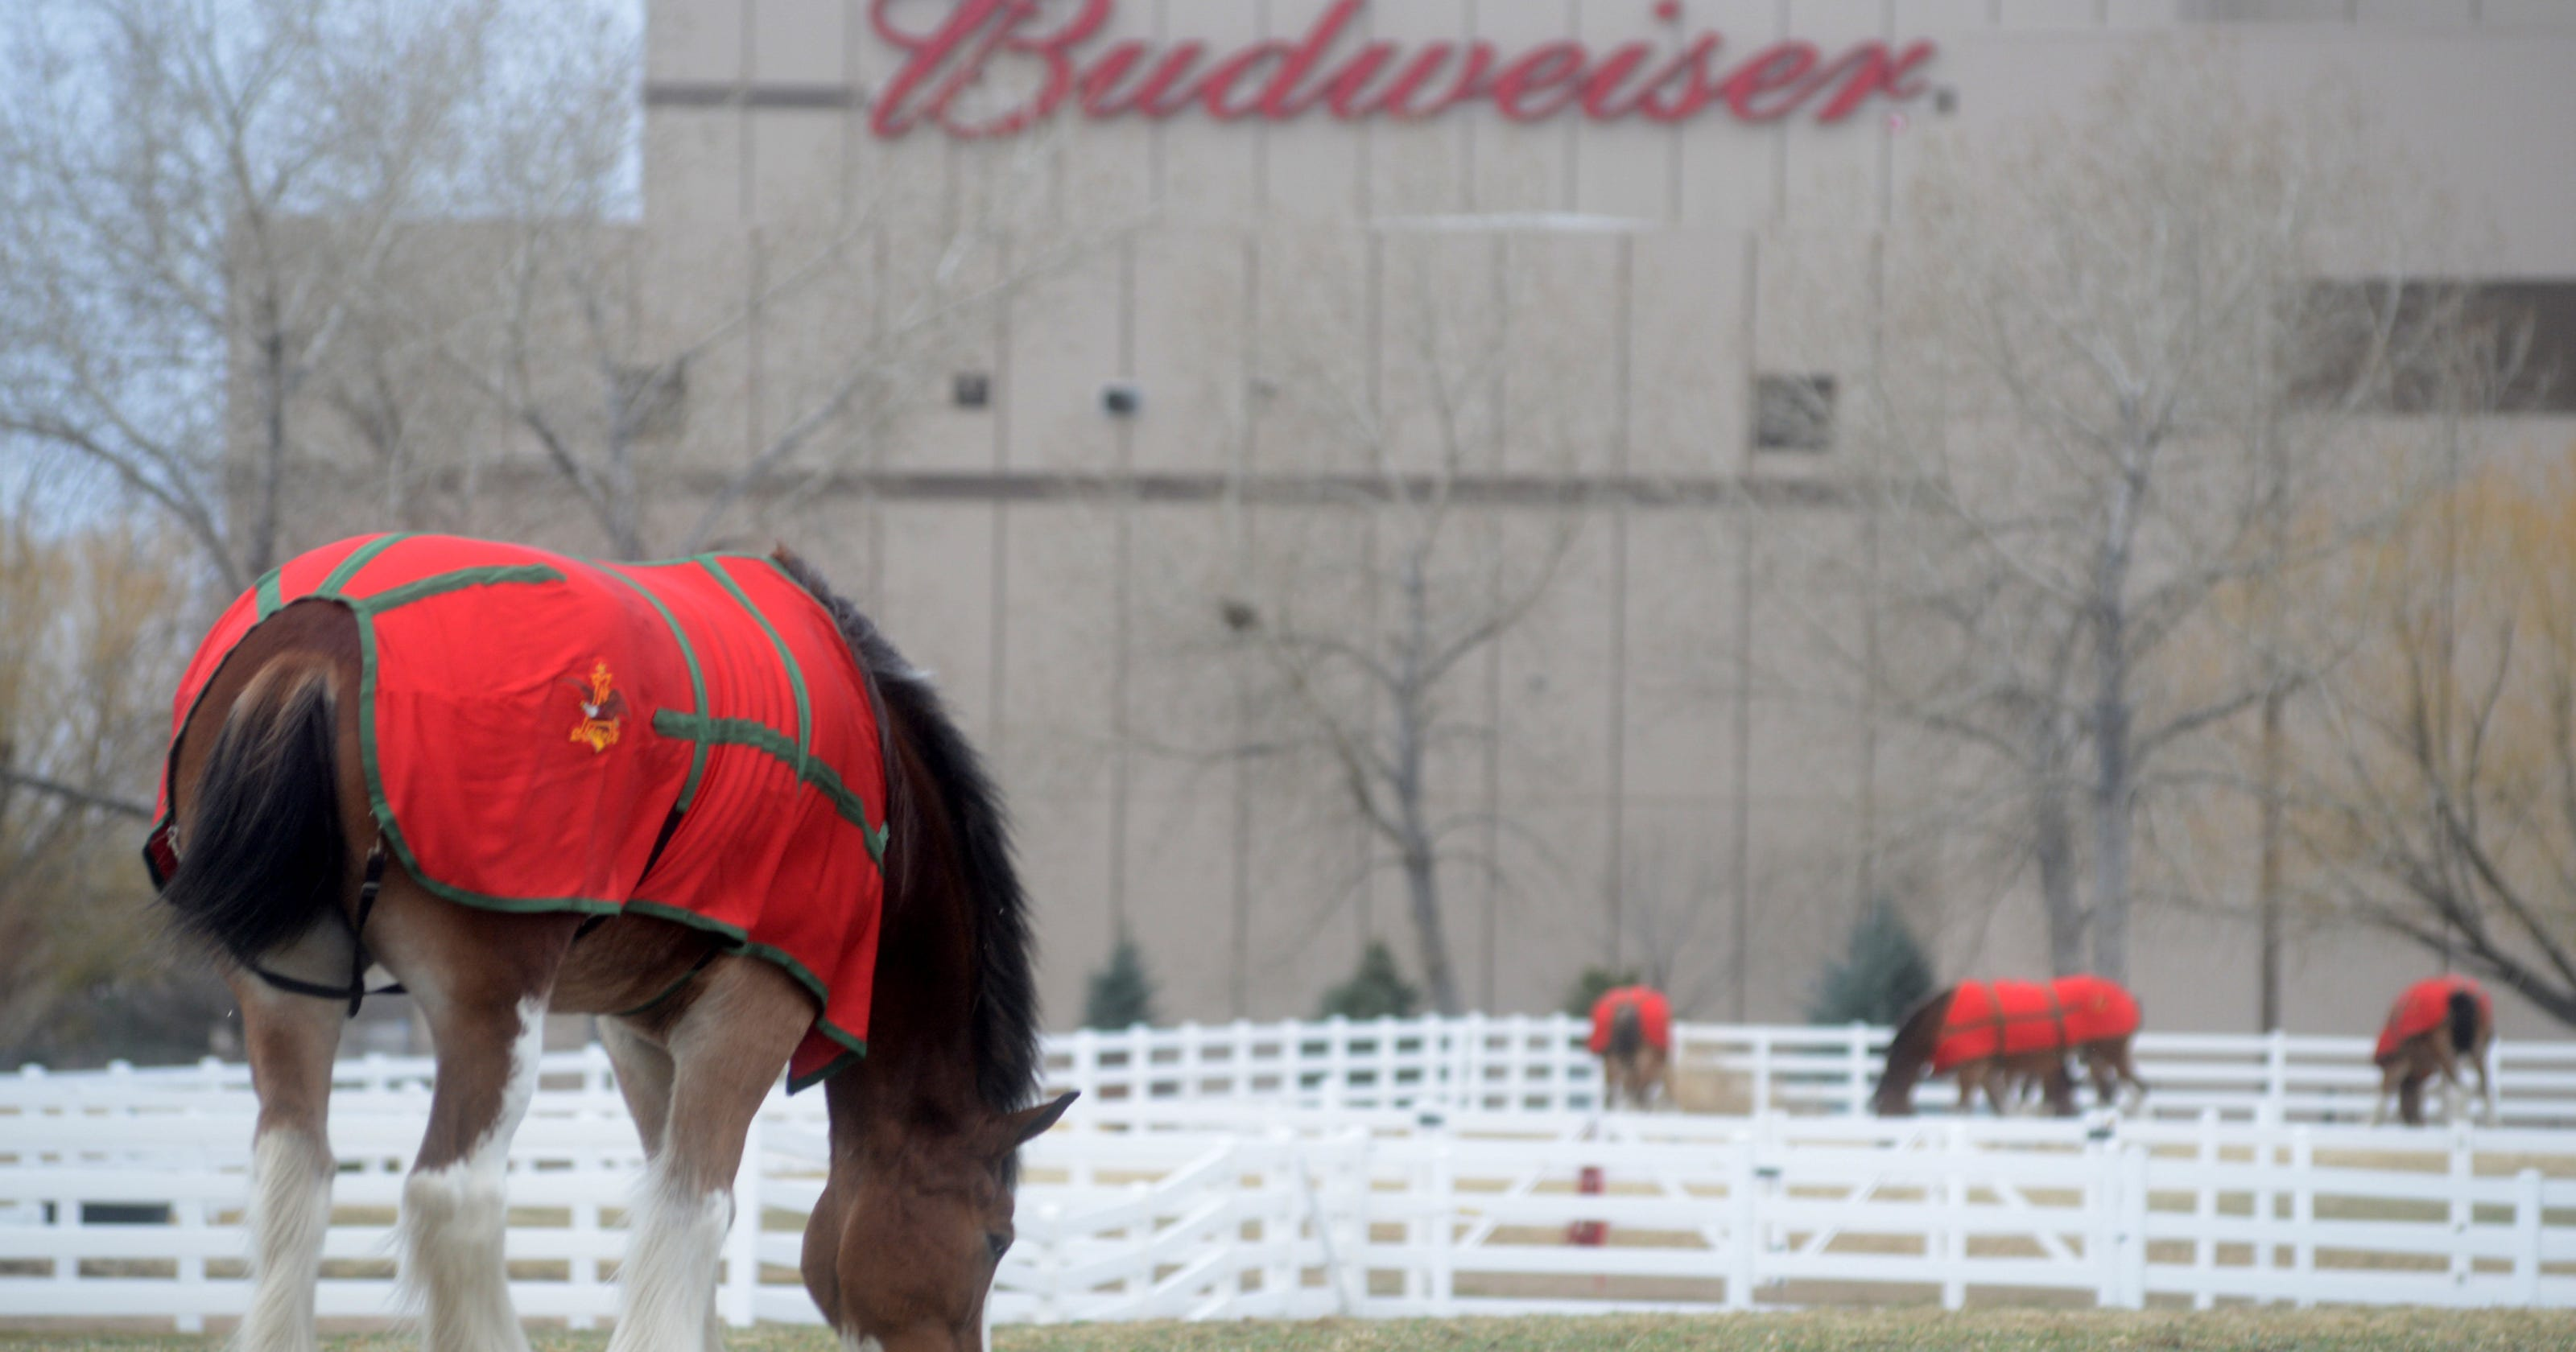 Fort Collins Budweiser Plant To Provide Emergency Water In